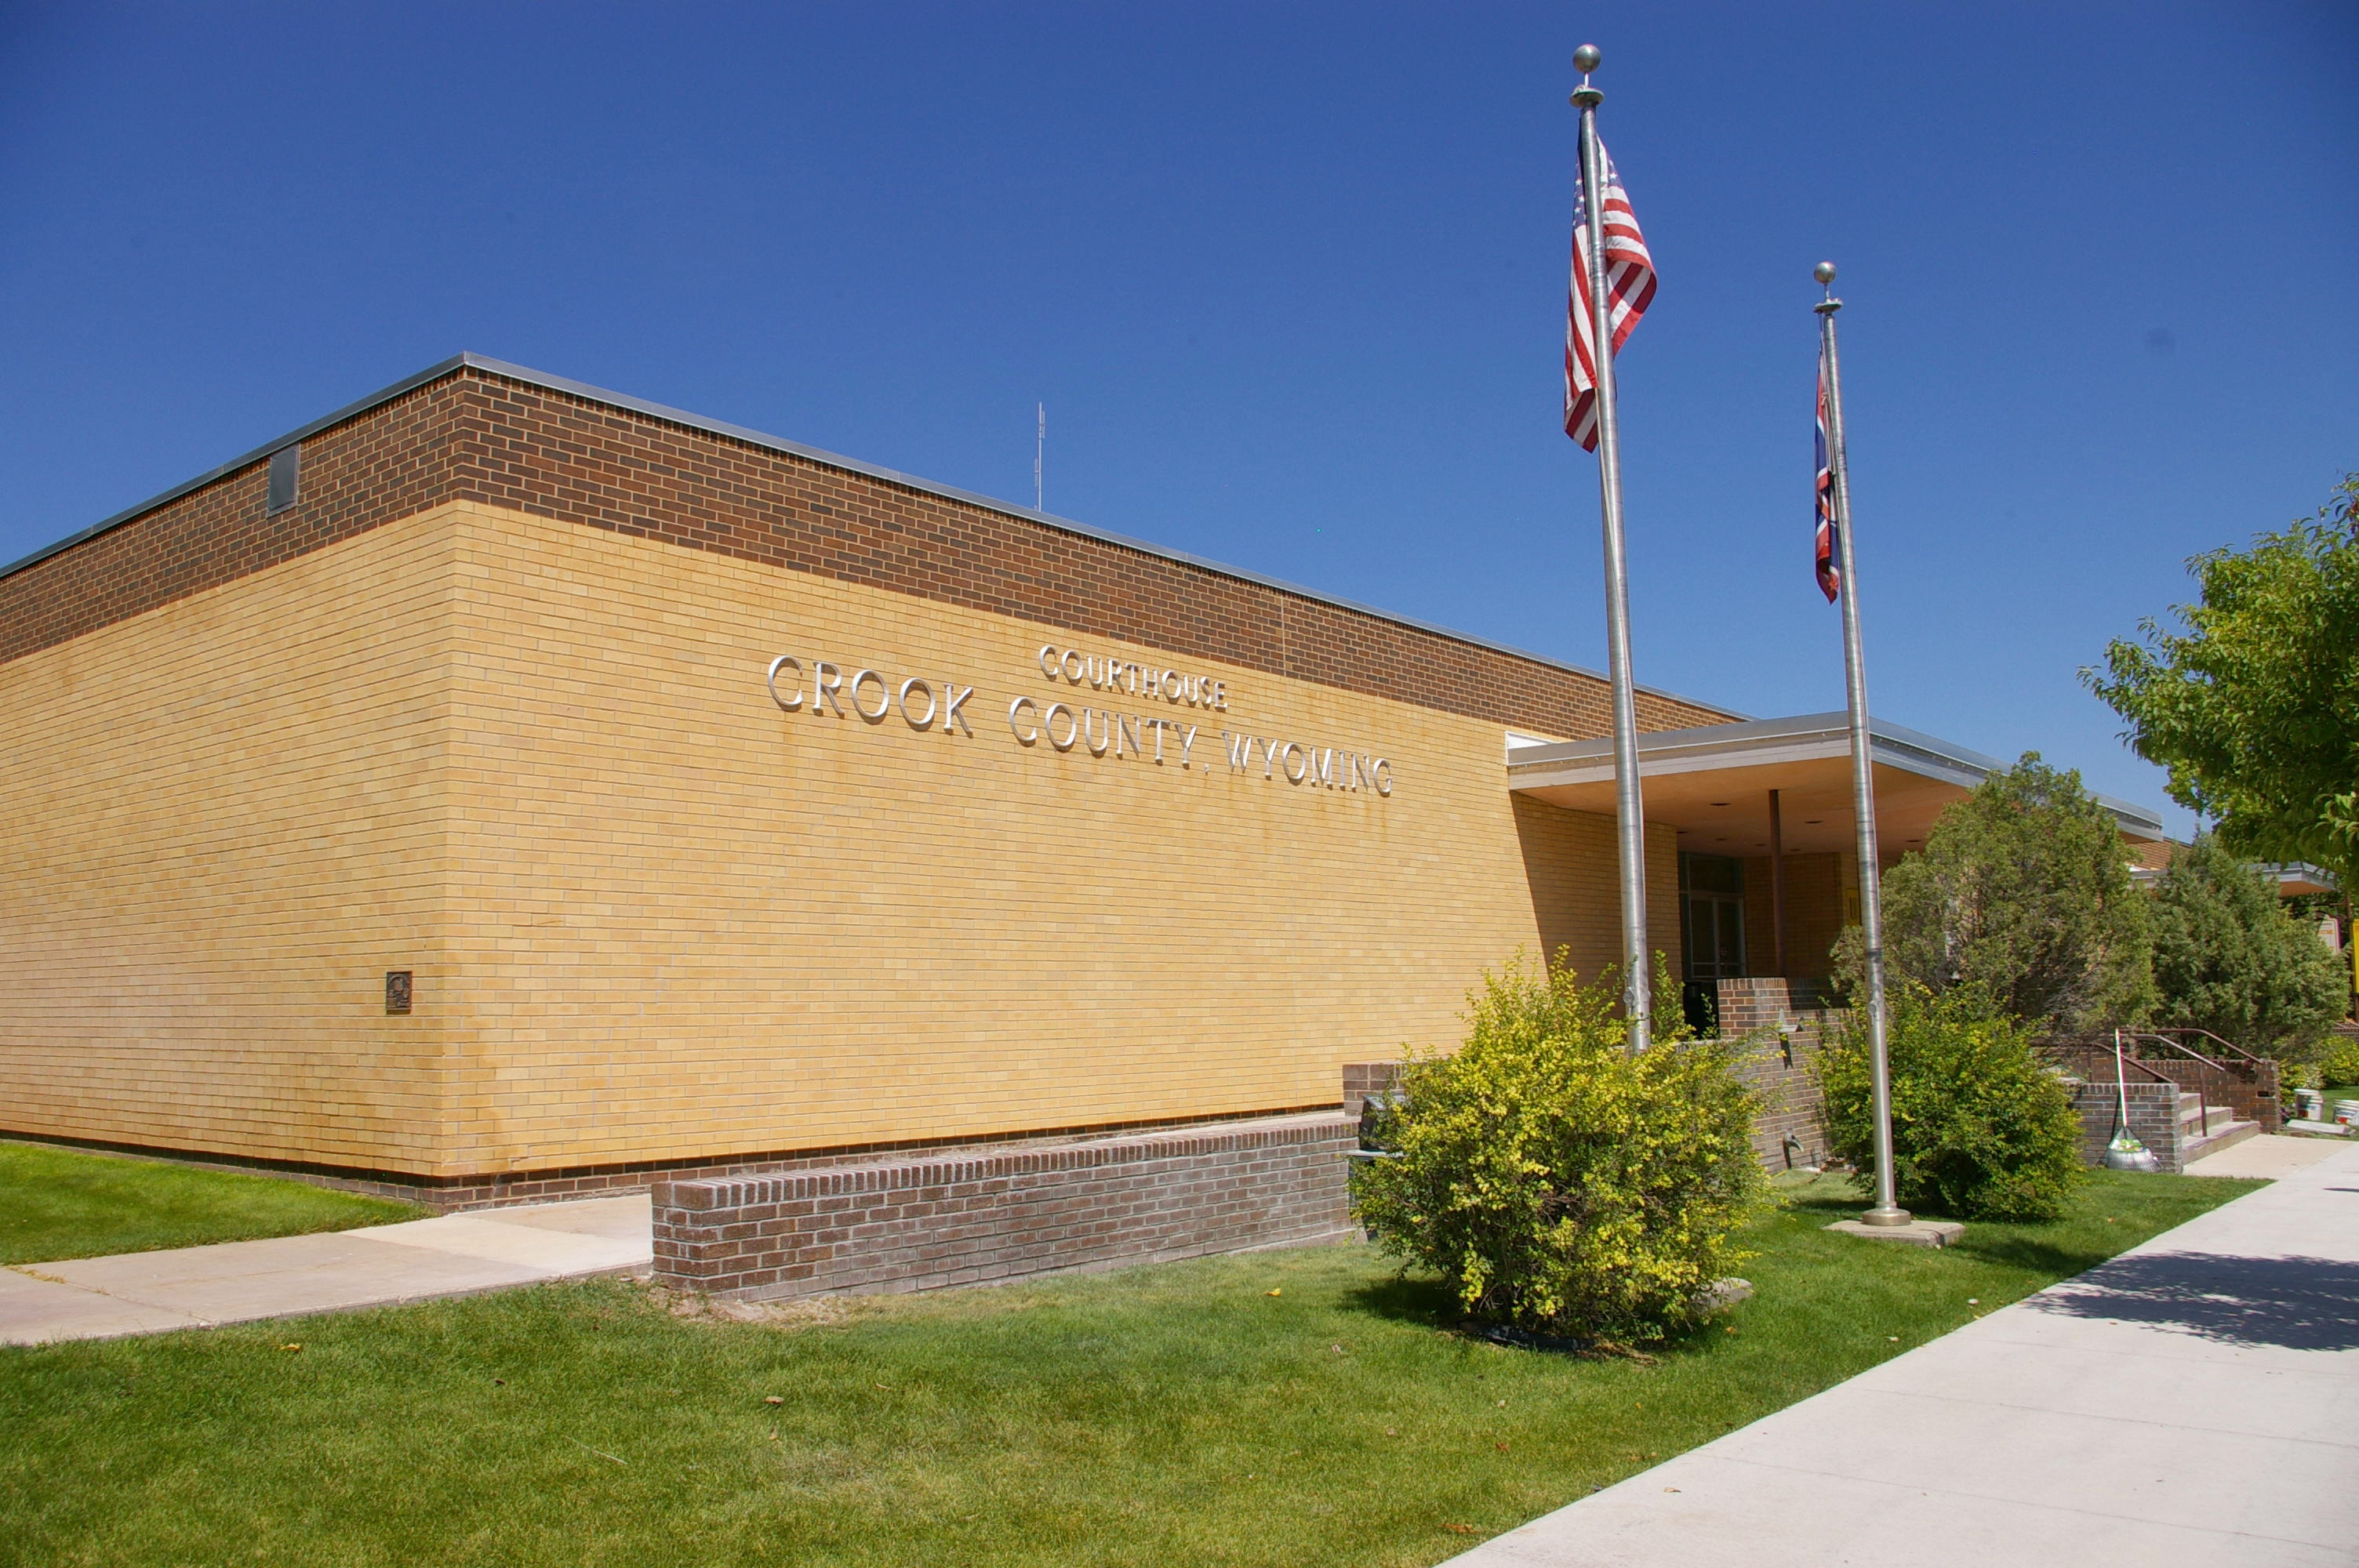 Crook County Us Courthouses